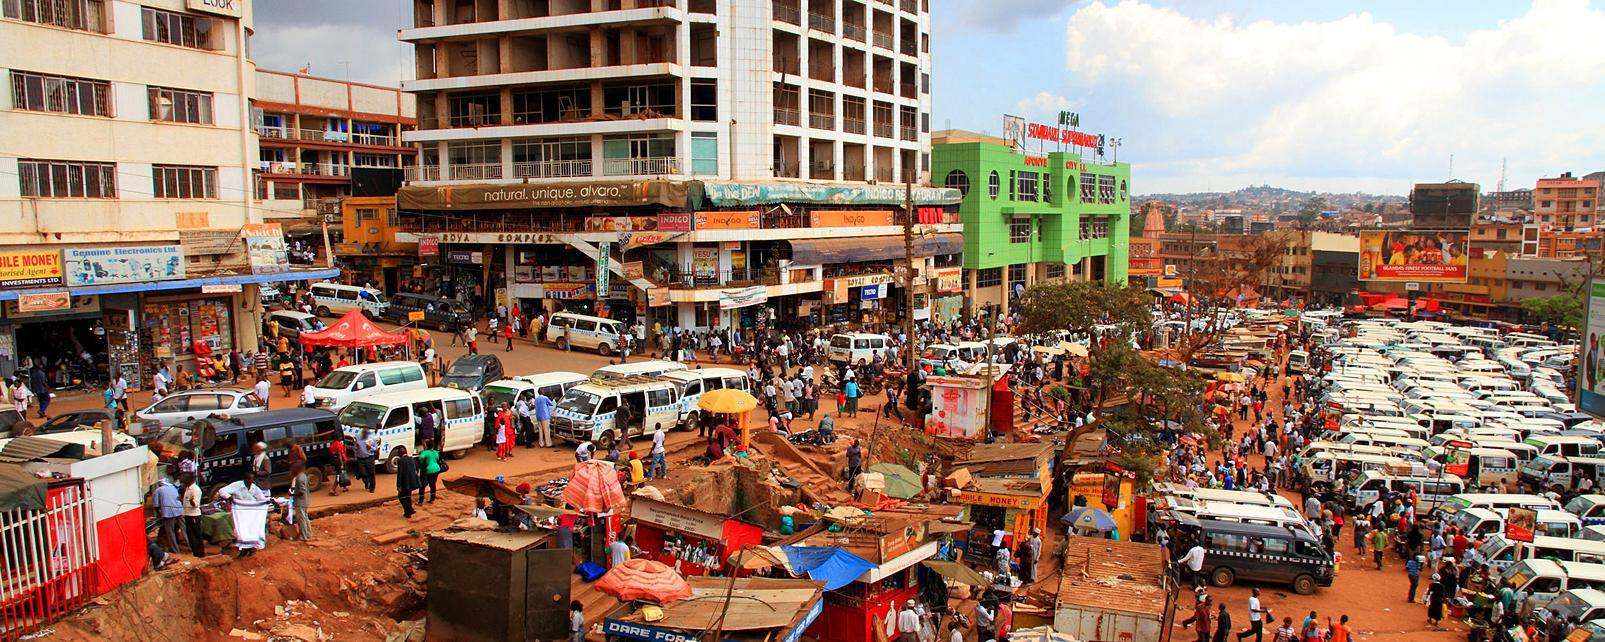 Hotels In Kampala City Centre